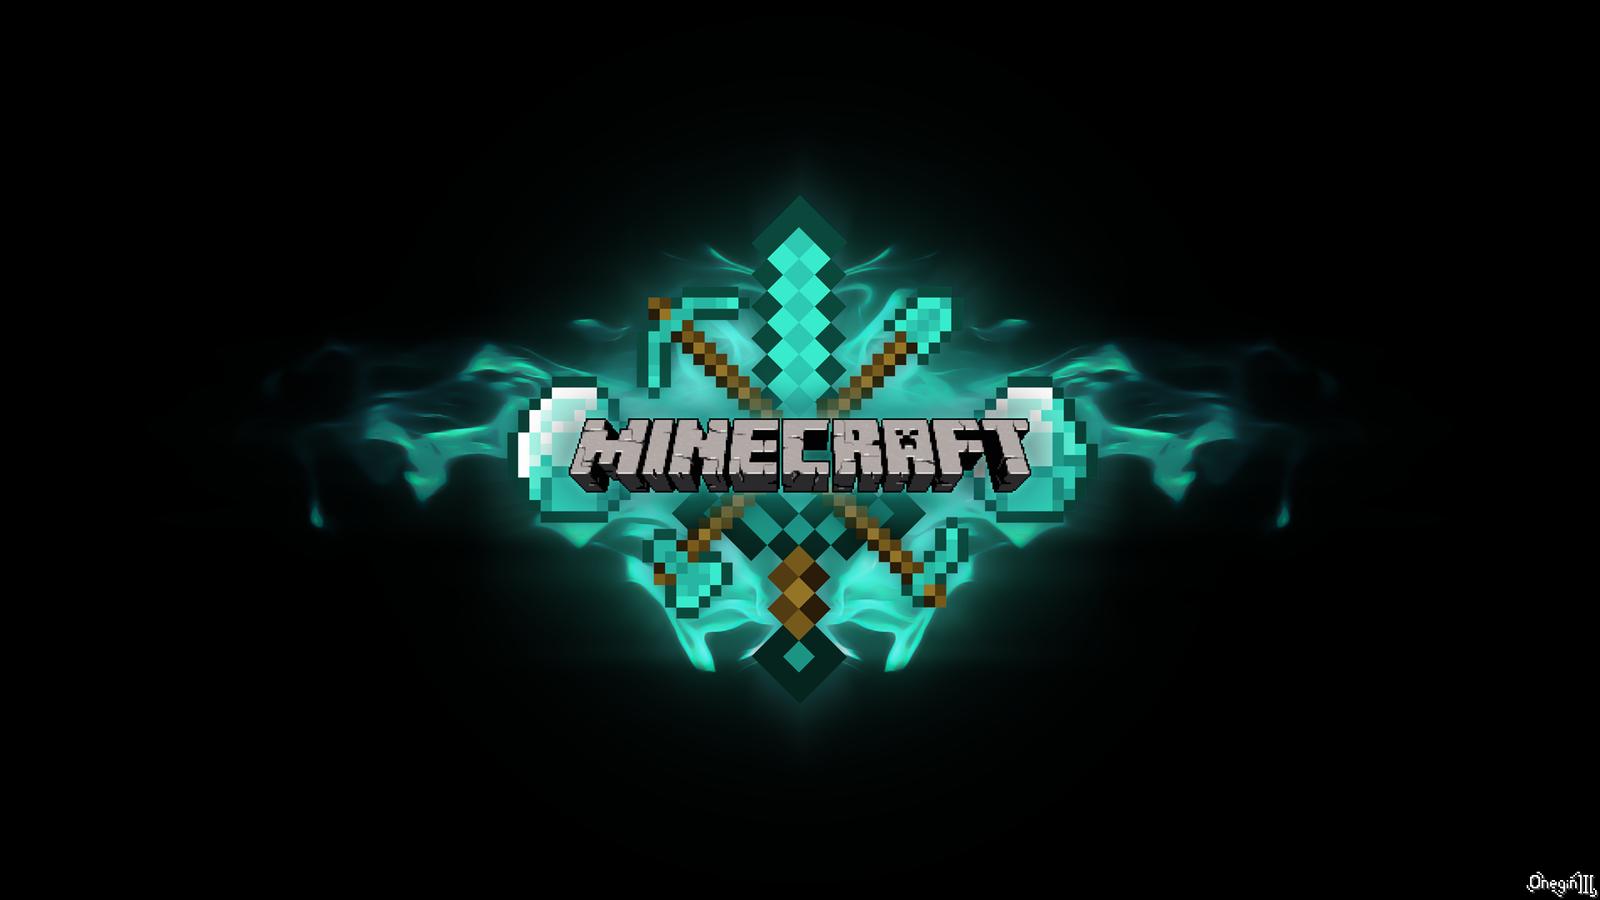 HD Minecraft Images Collection for Desktop